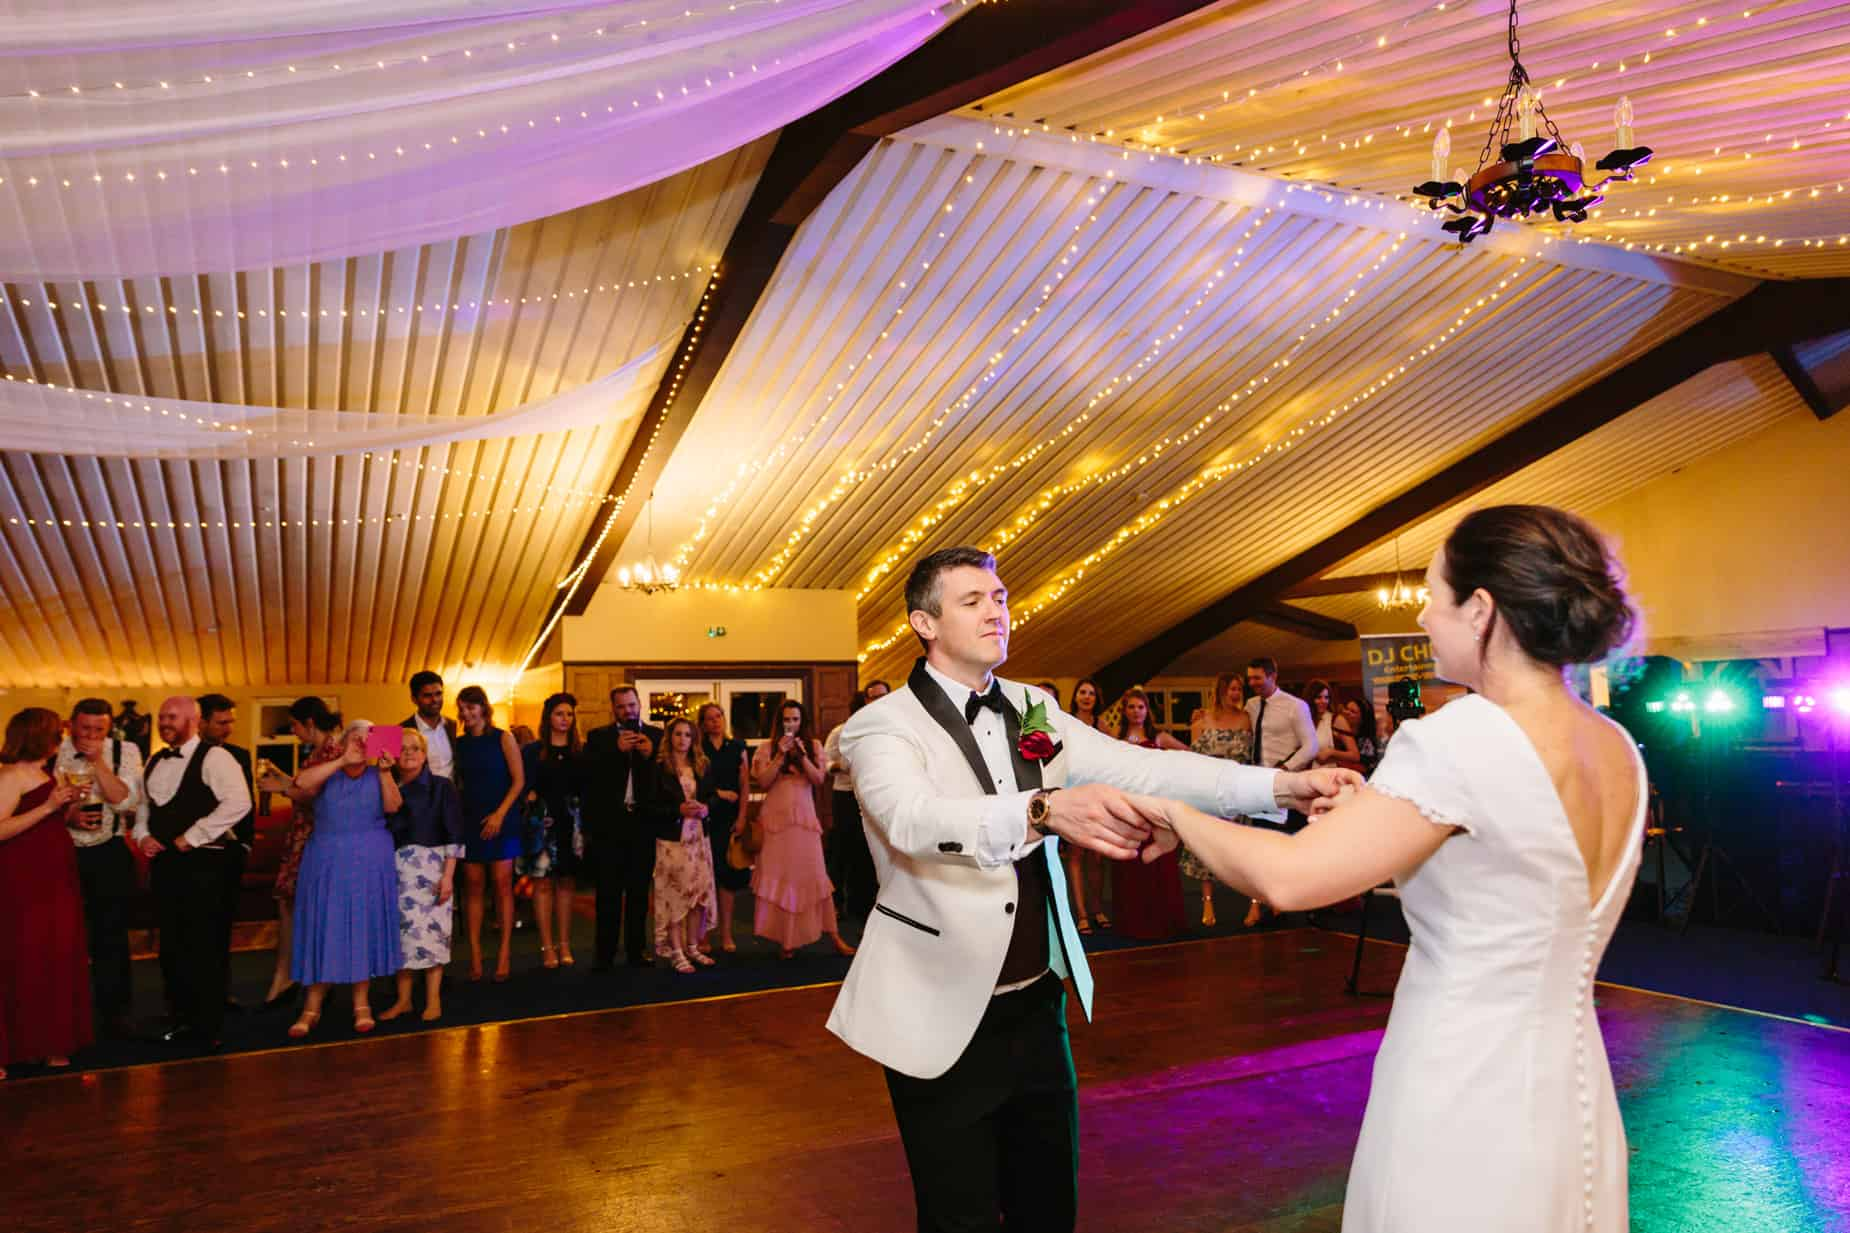 Bride and groom dancing on dance floor